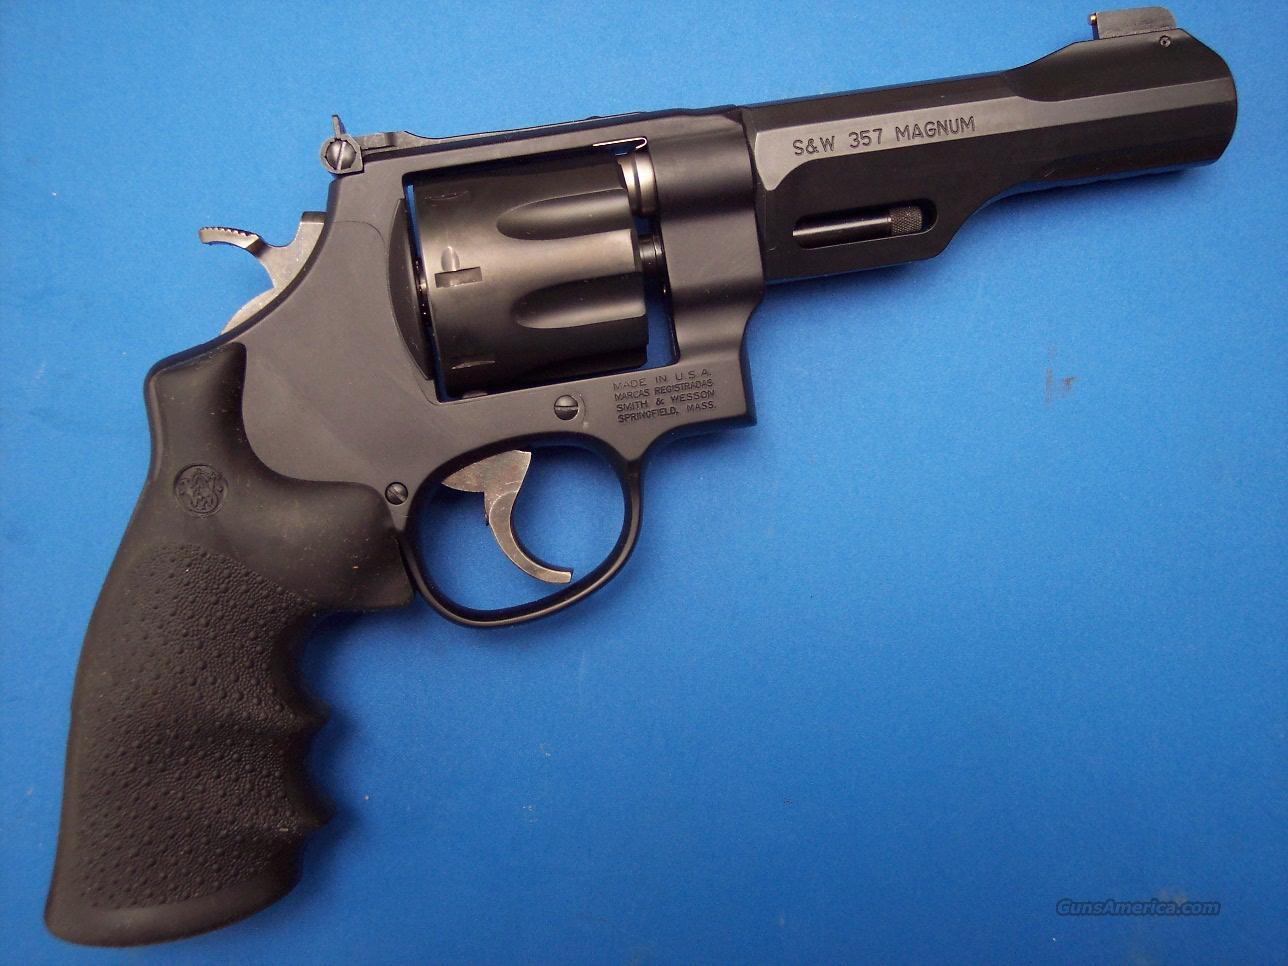 Smith & Wesson 327 TRR8 Performance Center .357 Mag 170269 *NEW*  Guns > Pistols > Smith & Wesson Revolvers > Performance Center